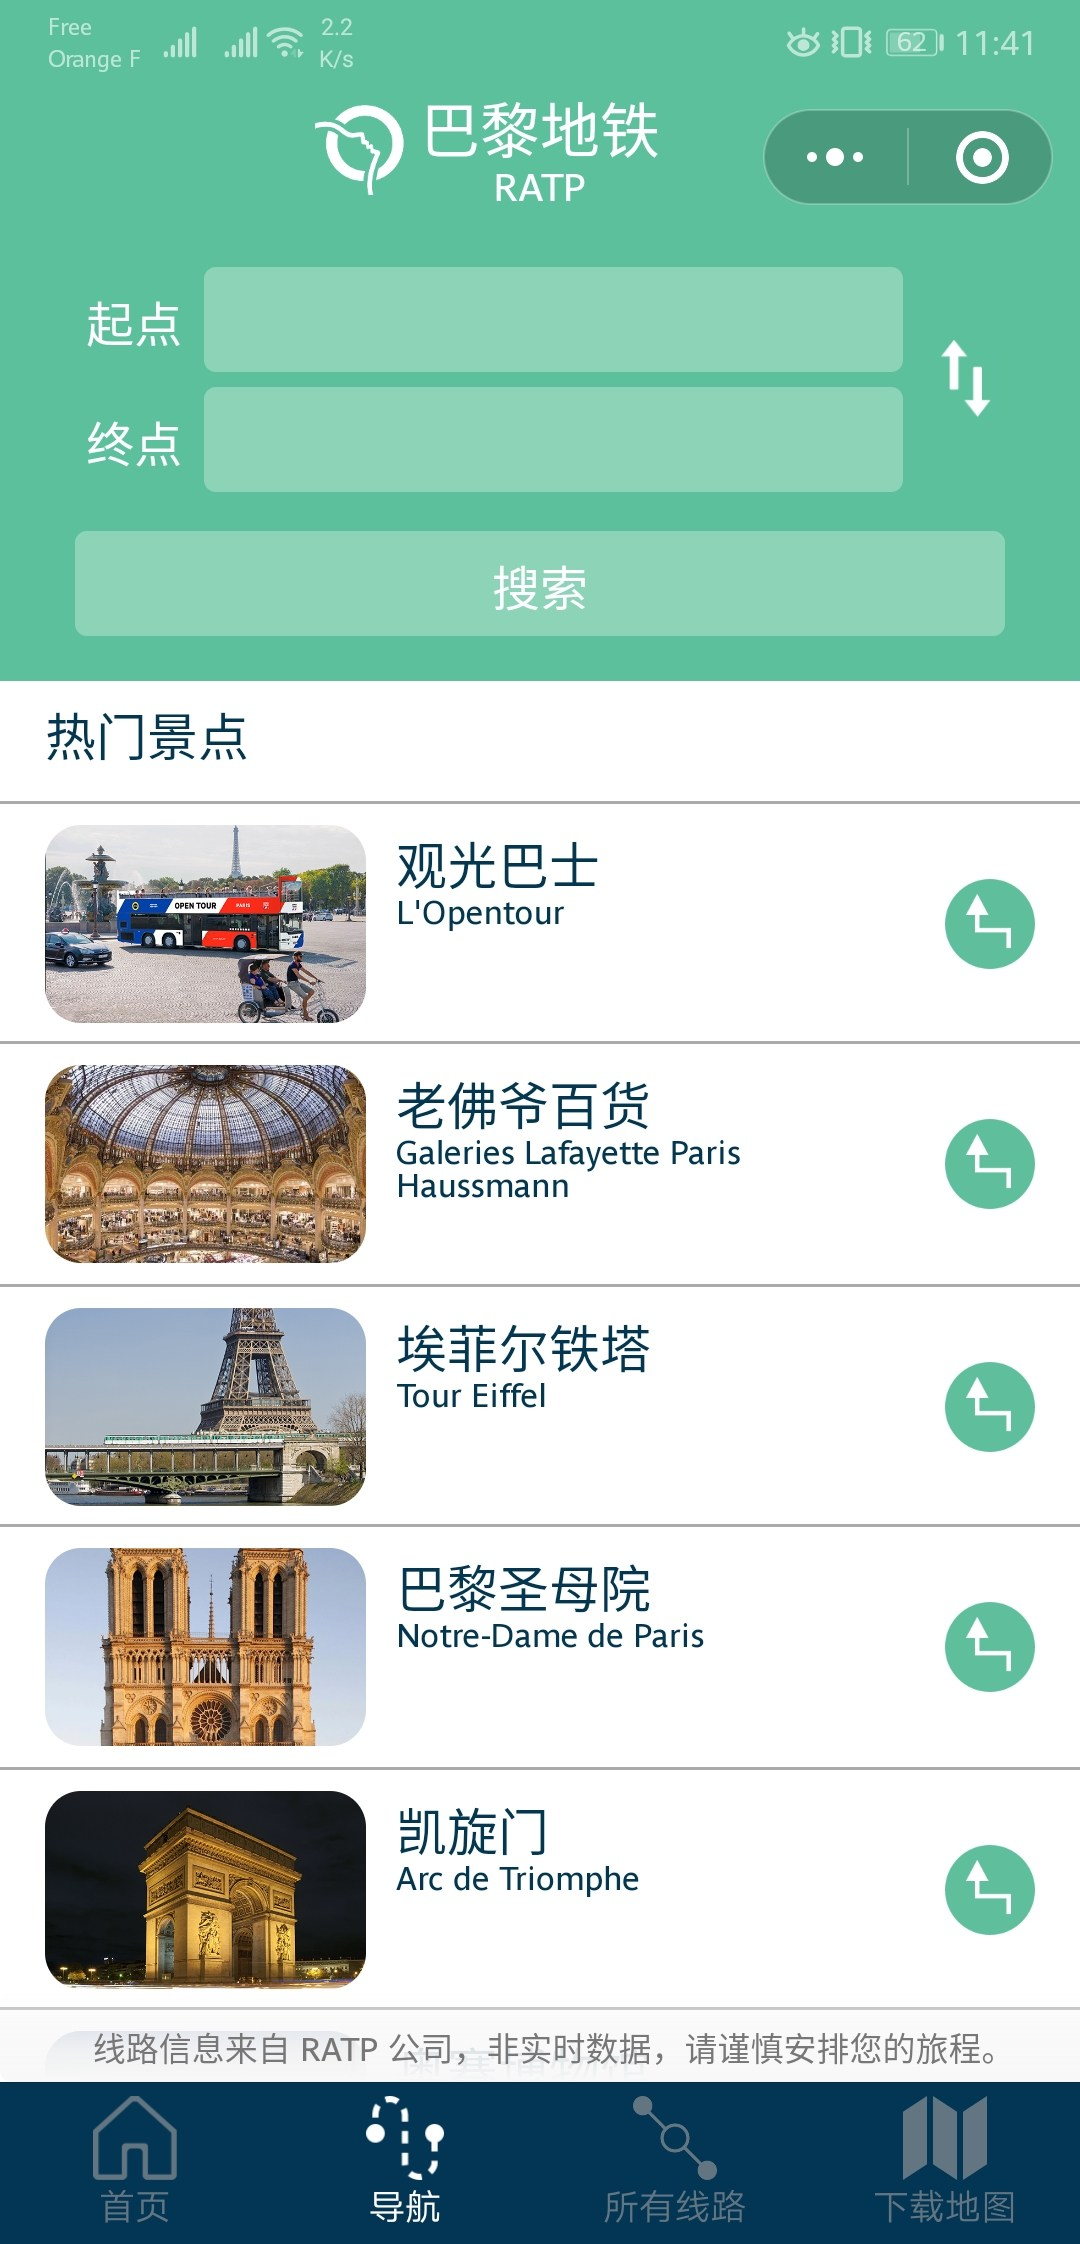 RATP wechat mini-program Paris Transports - EuroPass